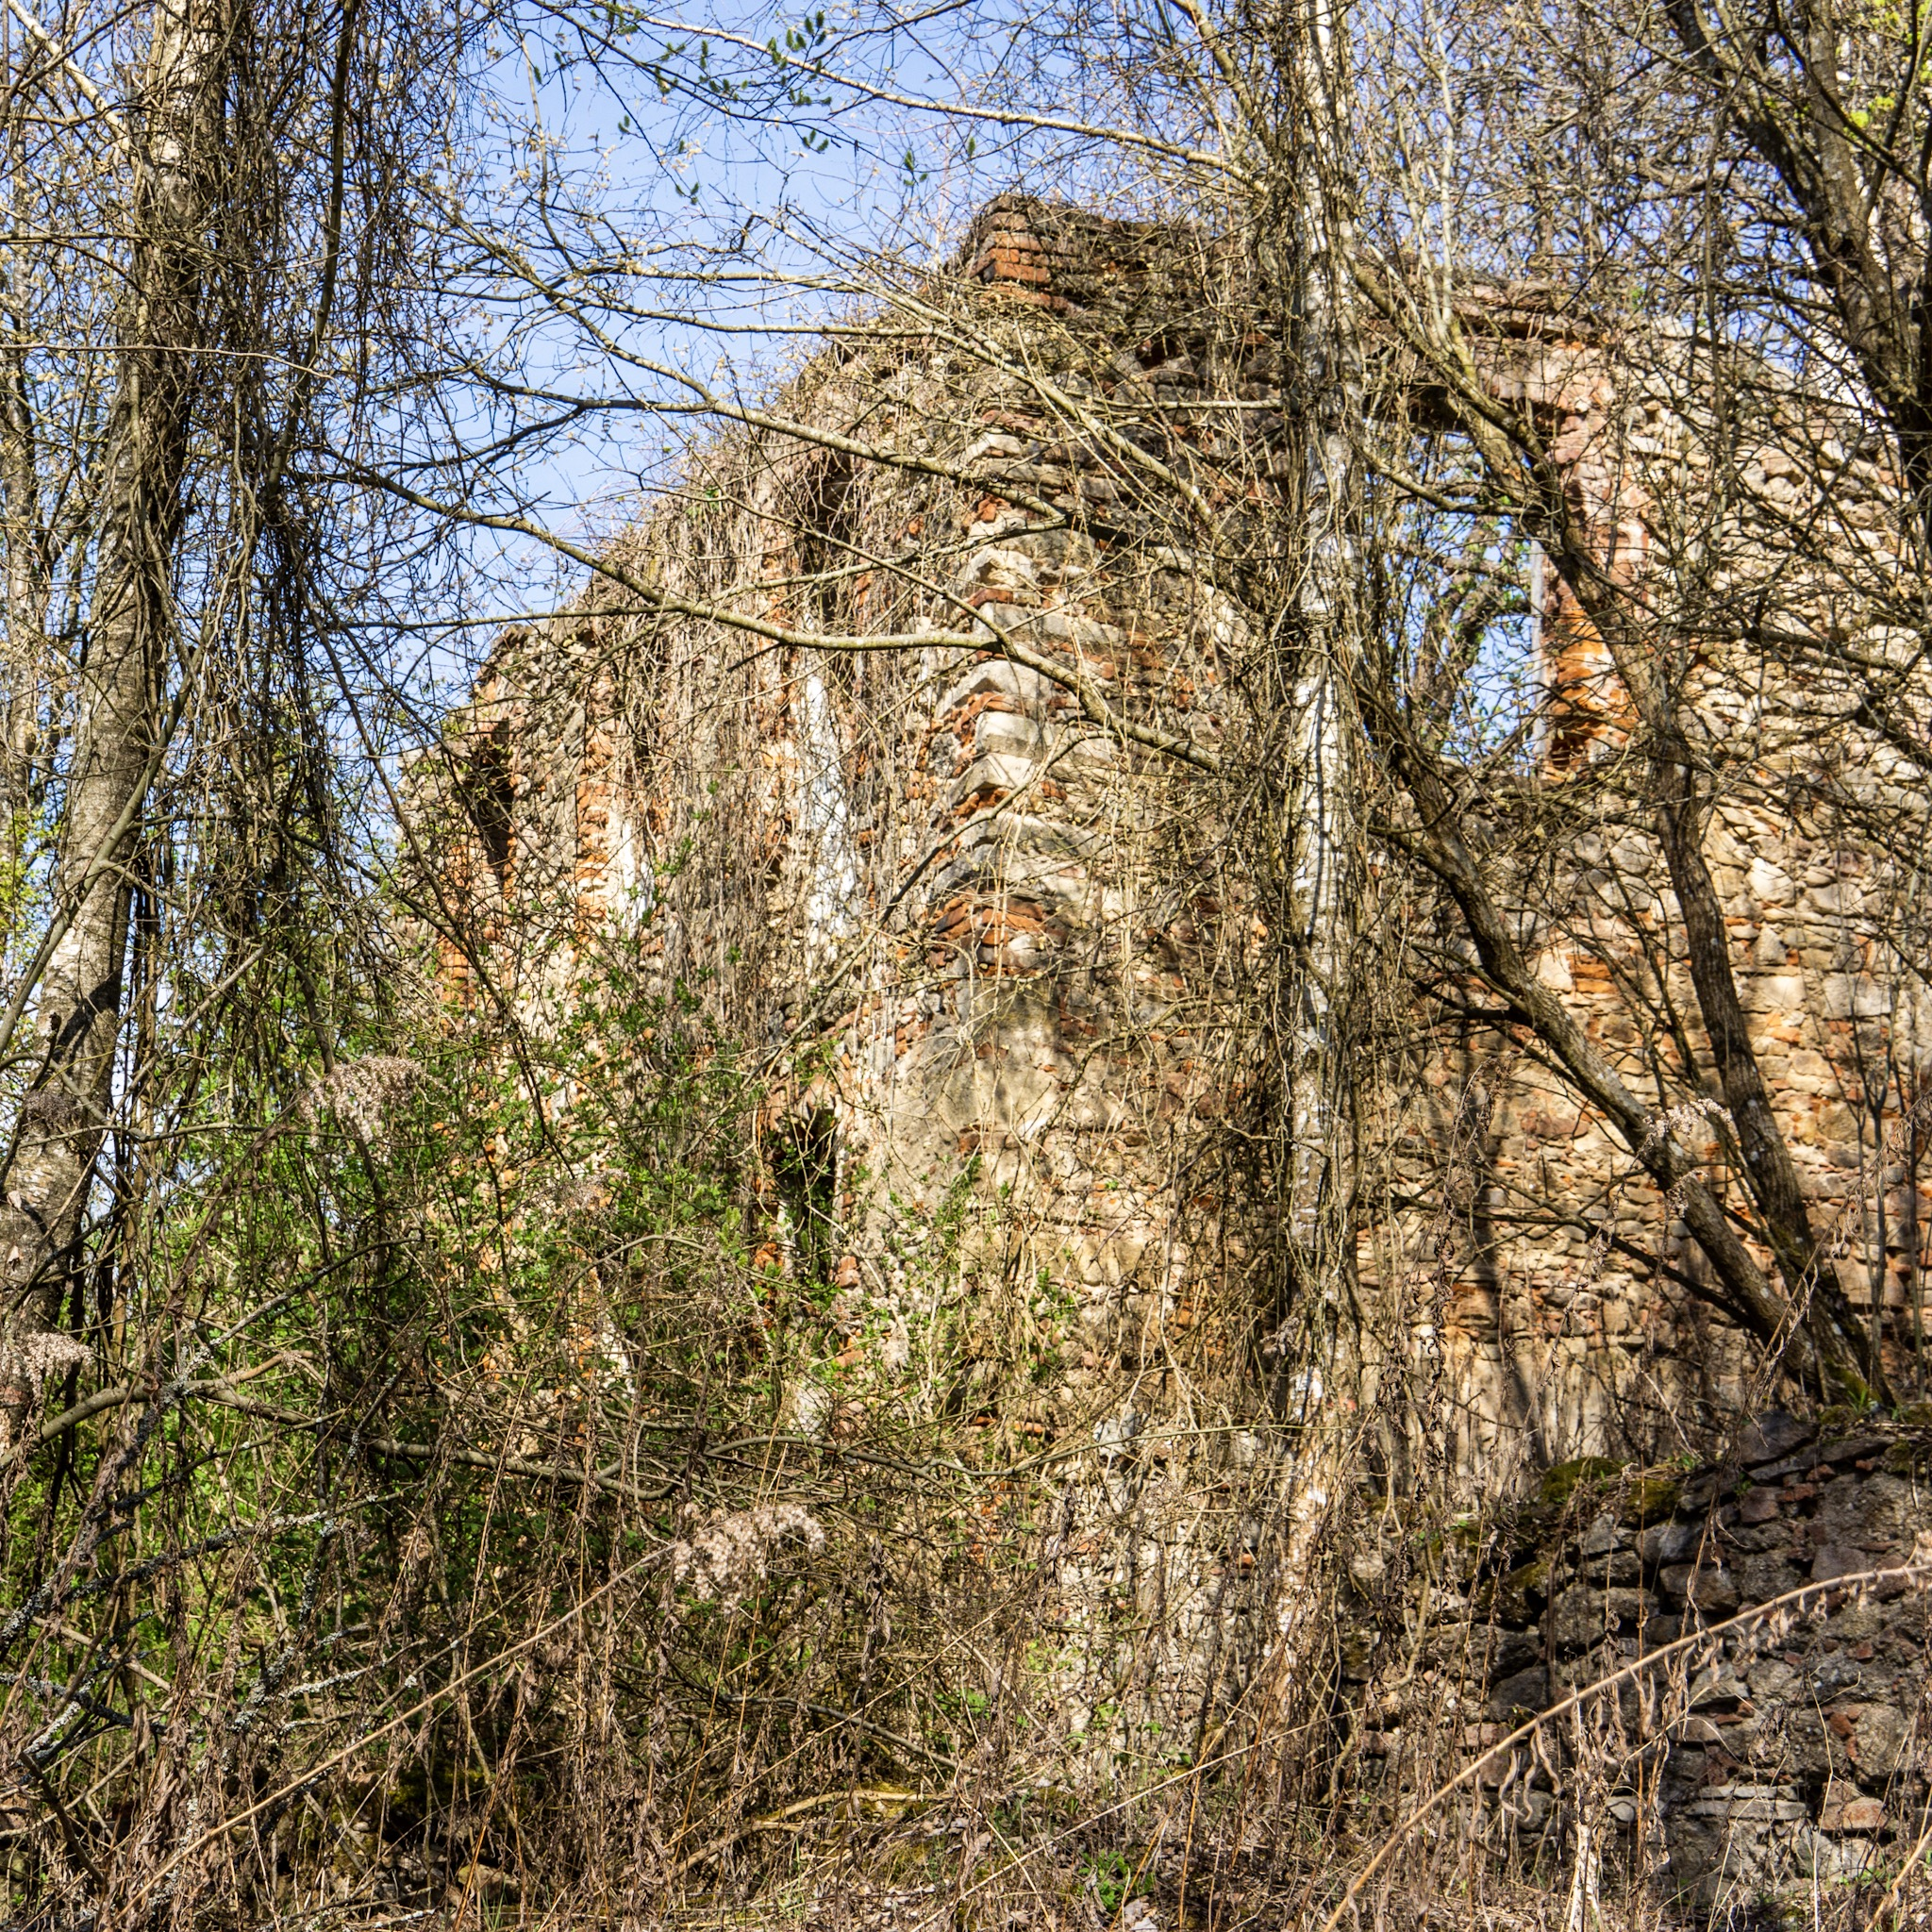 More abandoned structured in the woods at Döllersheim